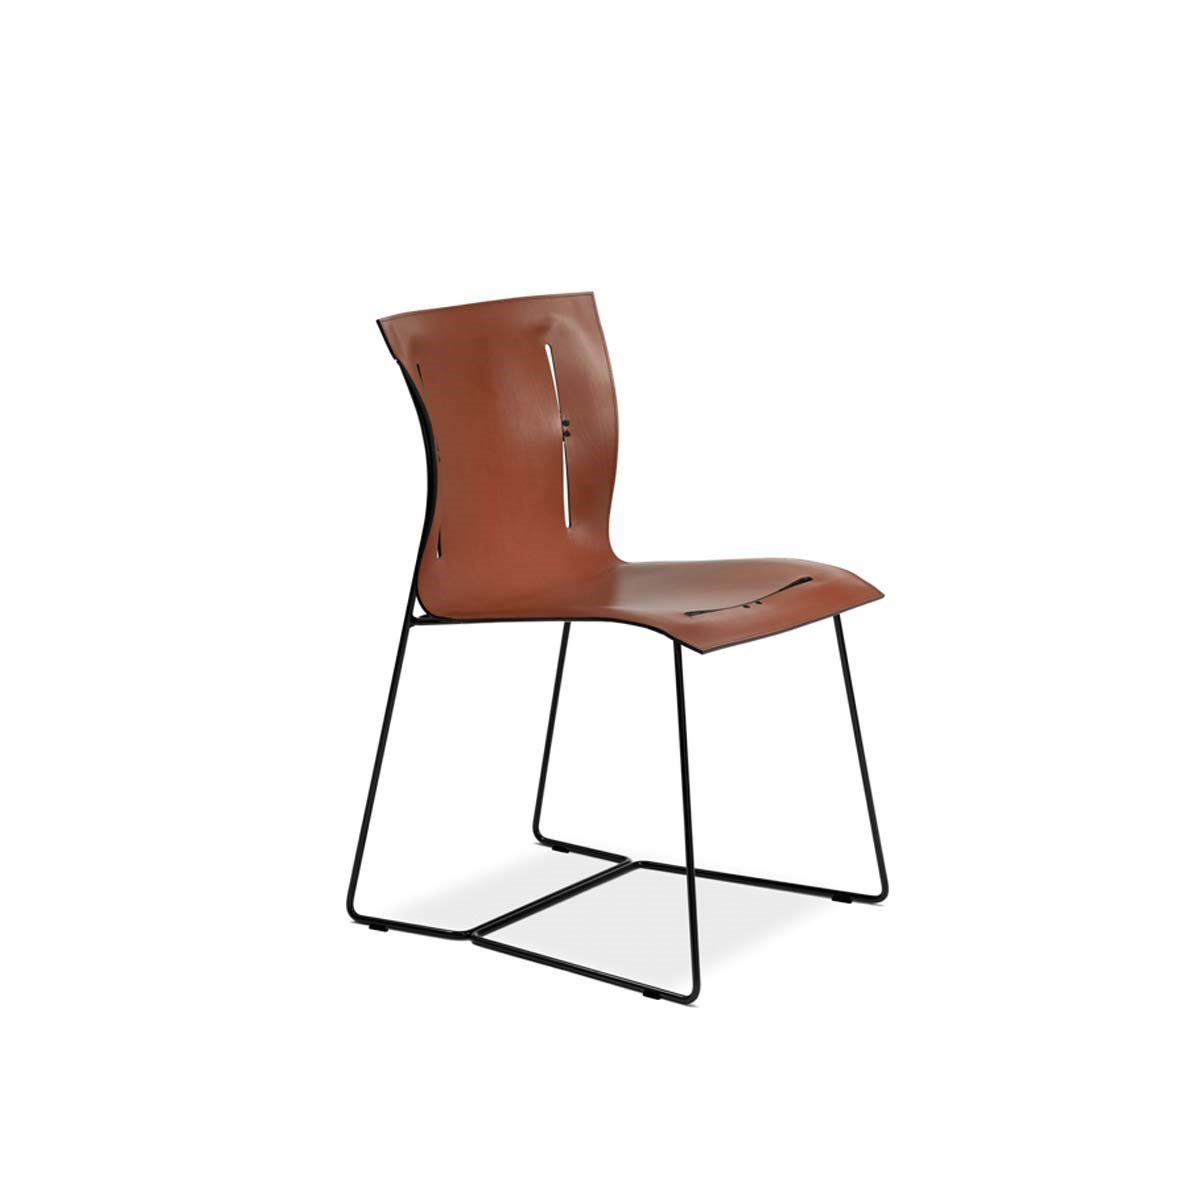 Walter-Knoll-EOOS-Cuoio-Dining-Chair-Matisse-1